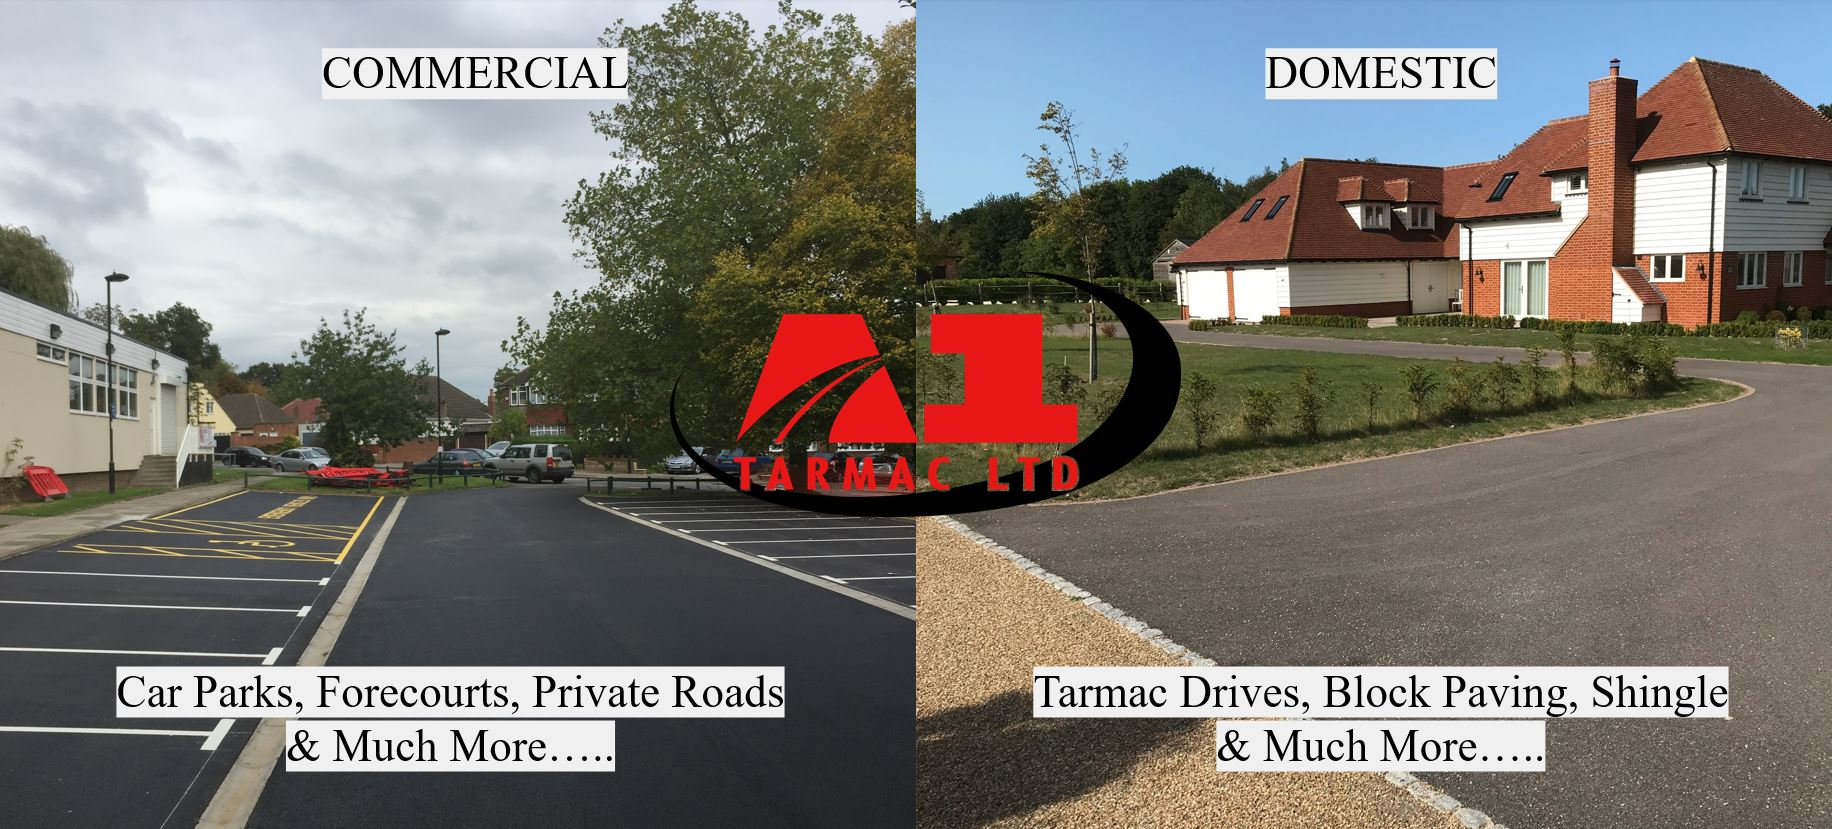 Tarmac Driveway Contractors in Kent, Sittingbourne, Medway, Maidstone